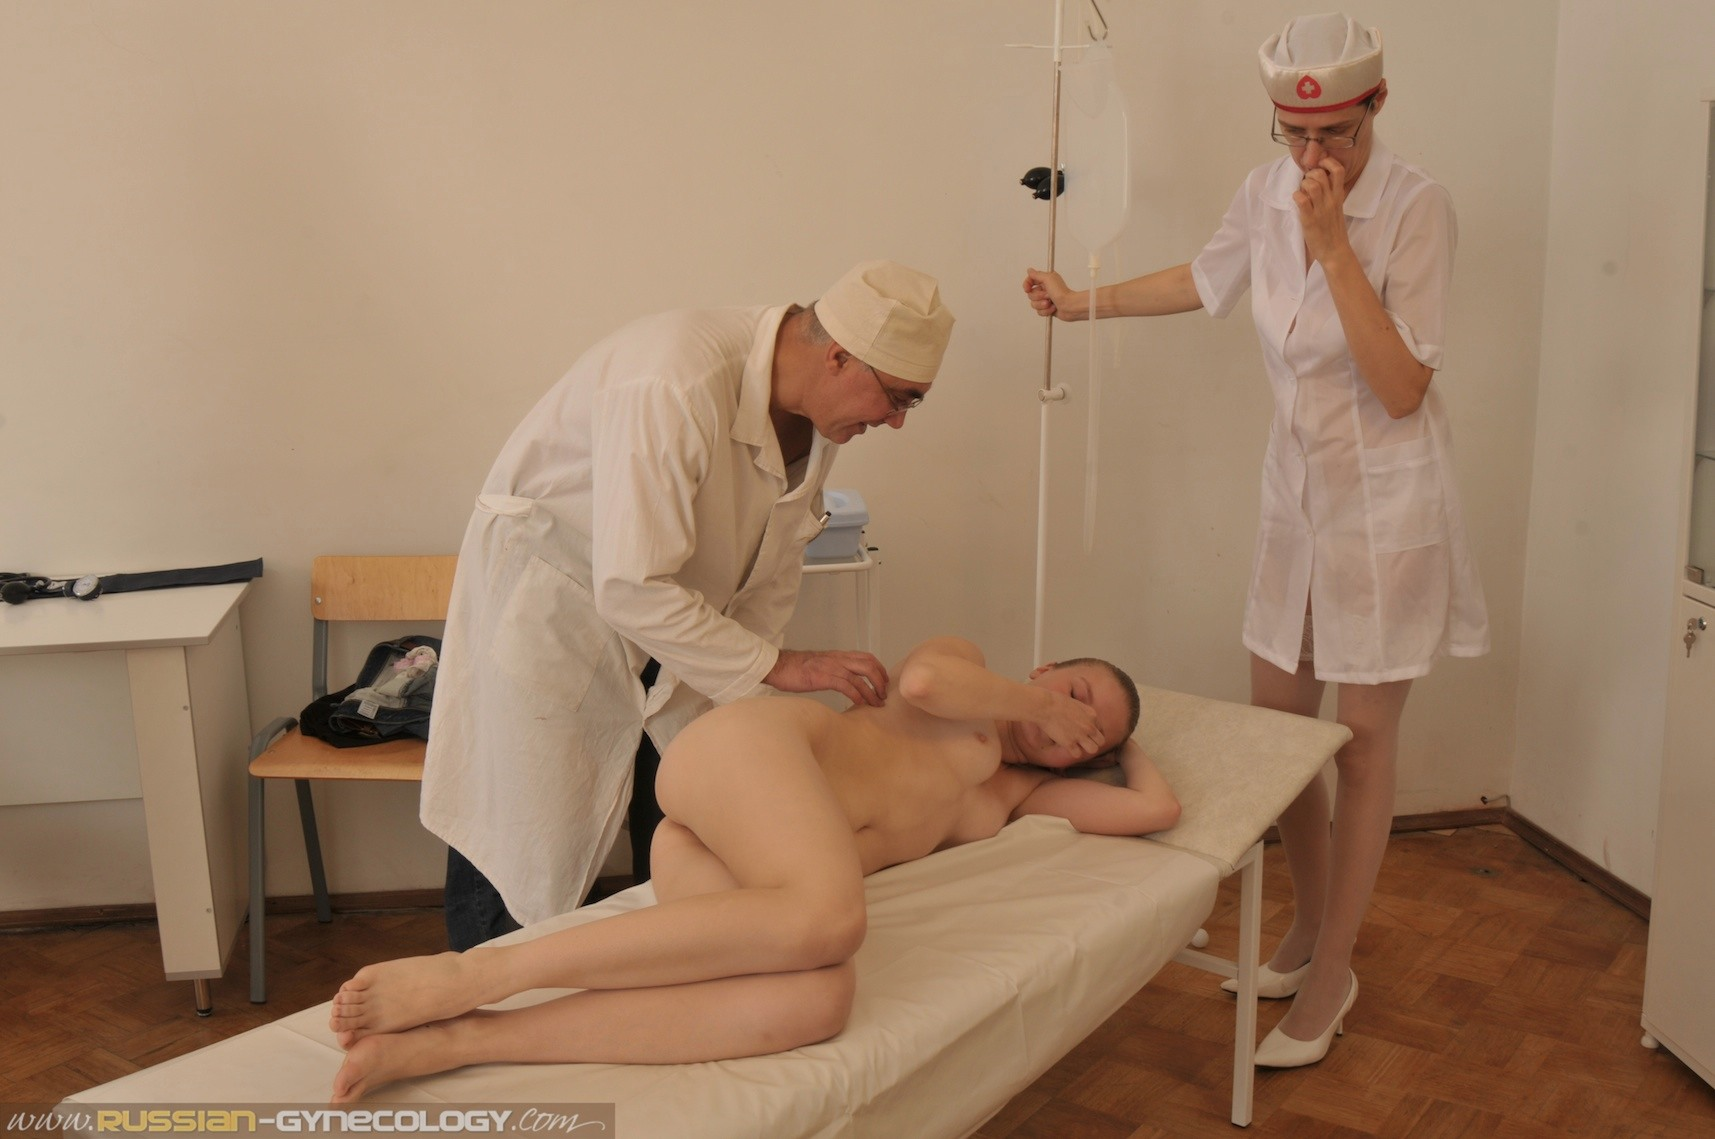 russian gynecology site hg galleries 003 photo06